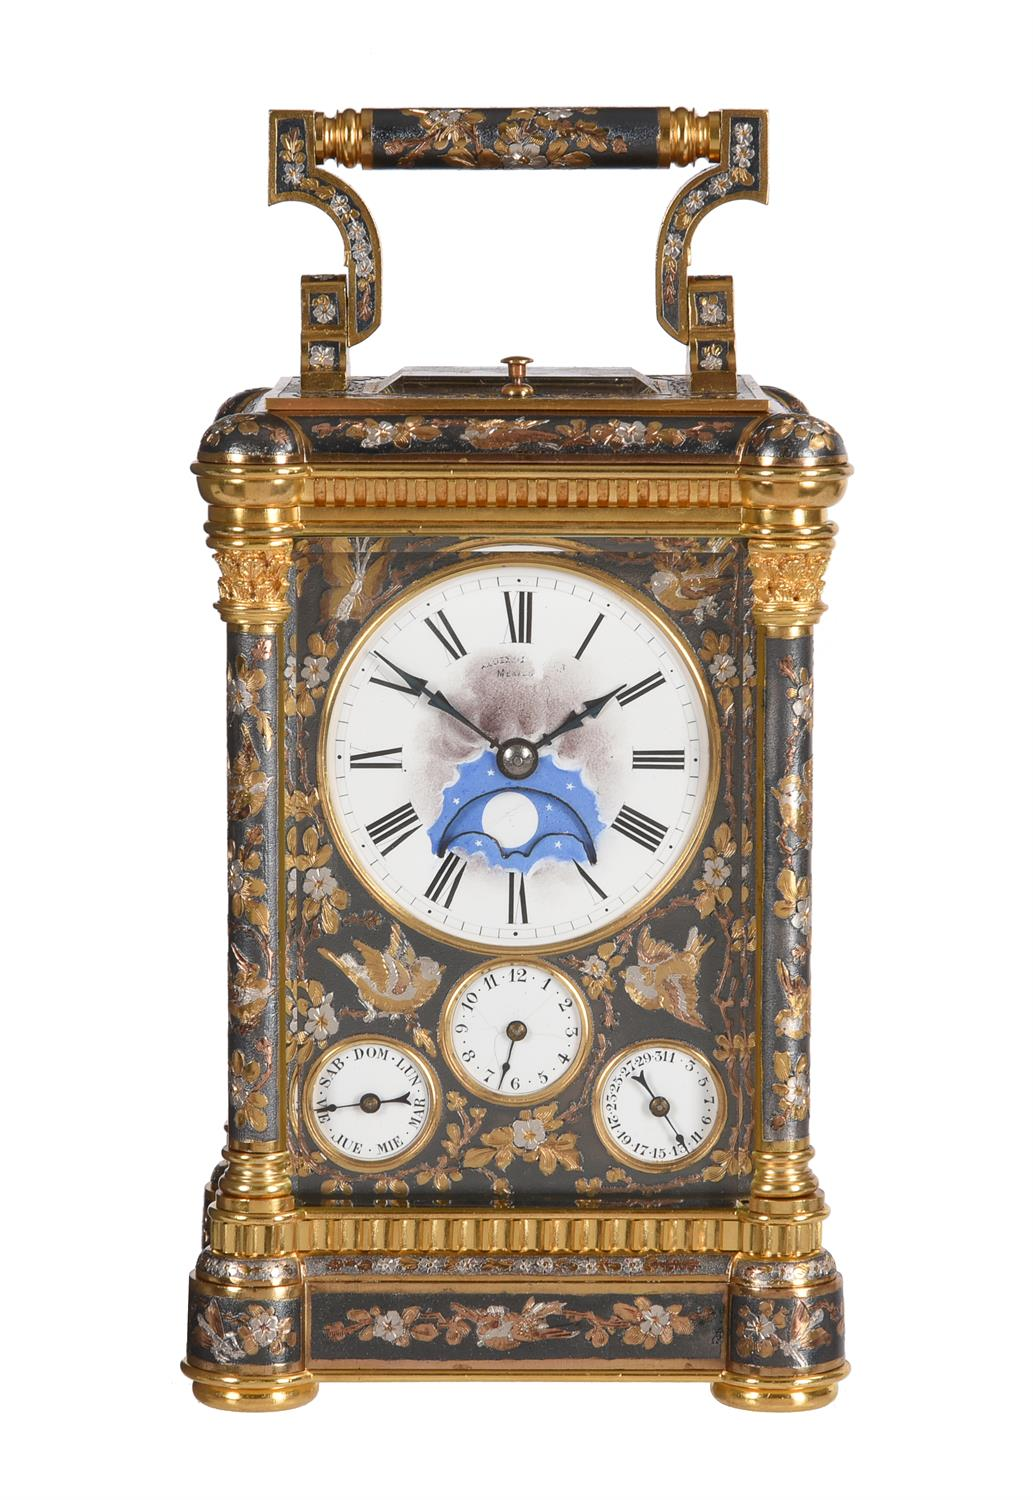 A fine multi-colour grande-sonnerie striking and repeating moonphase calendar alarm carriage clock - Image 5 of 8